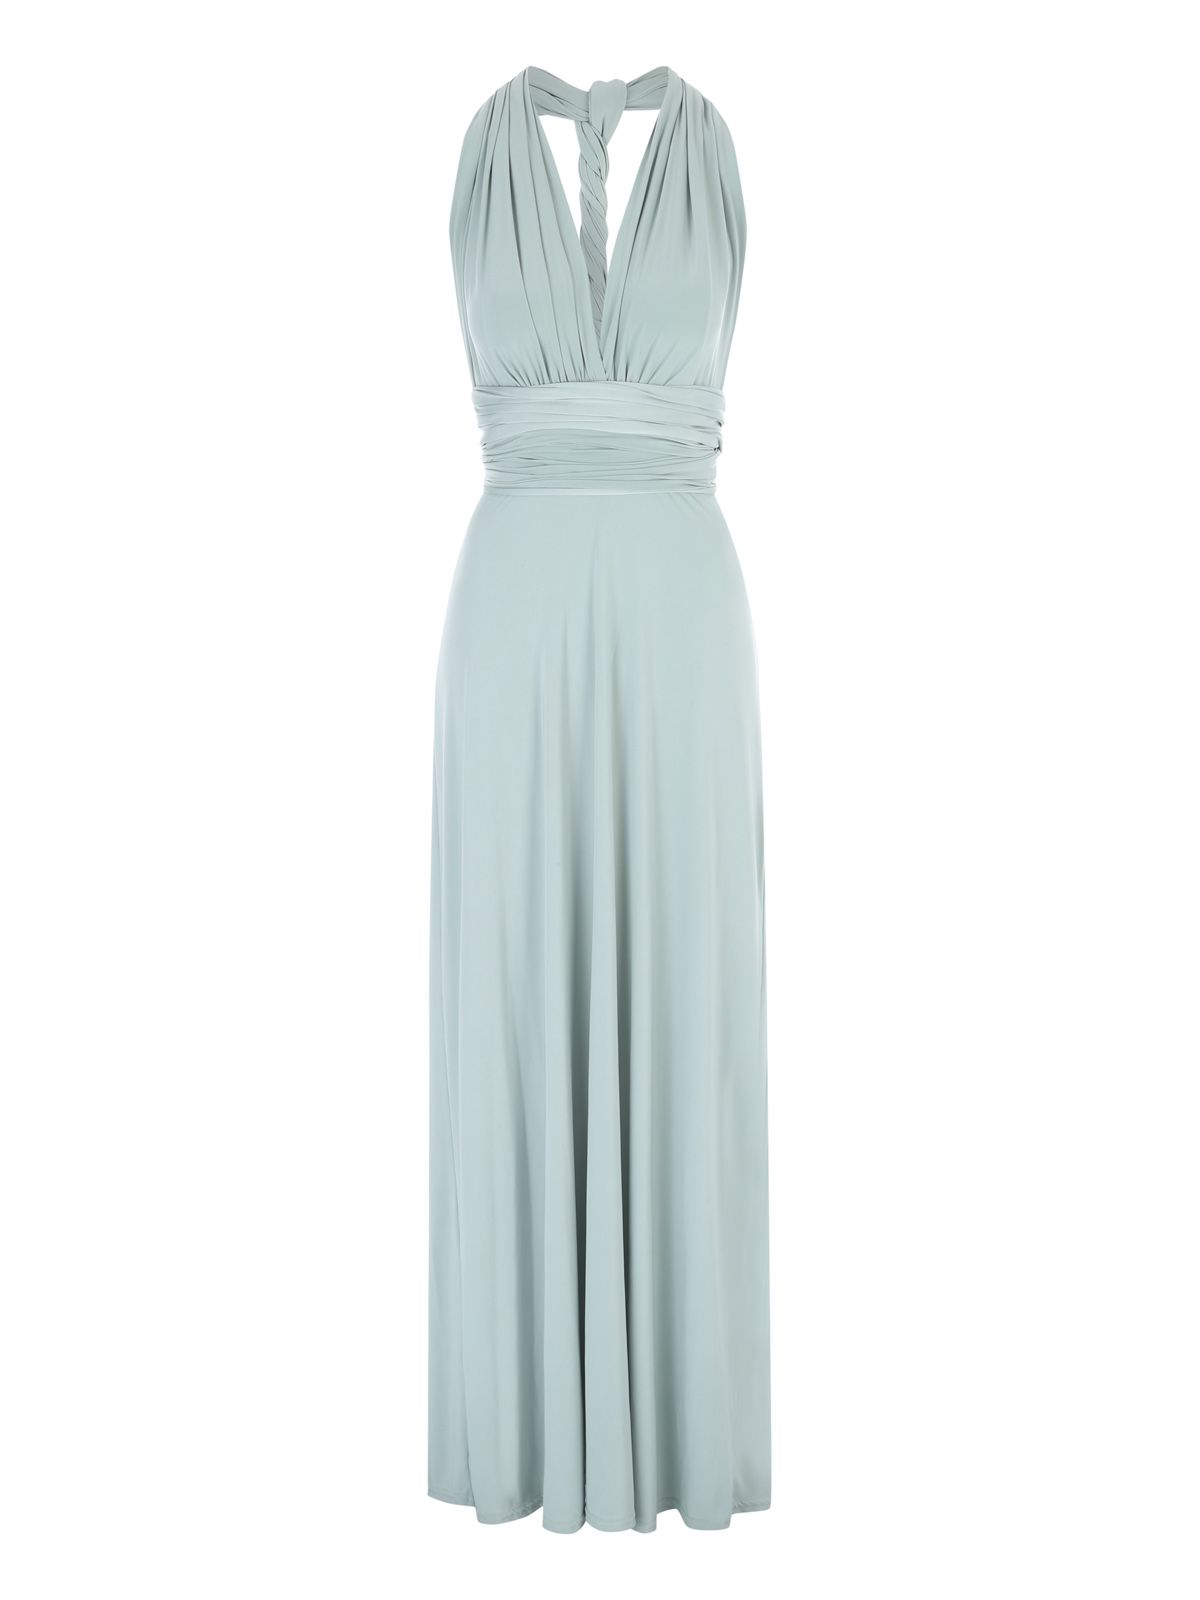 Jane Norman Multiway Maxi Dress - House of Fraser